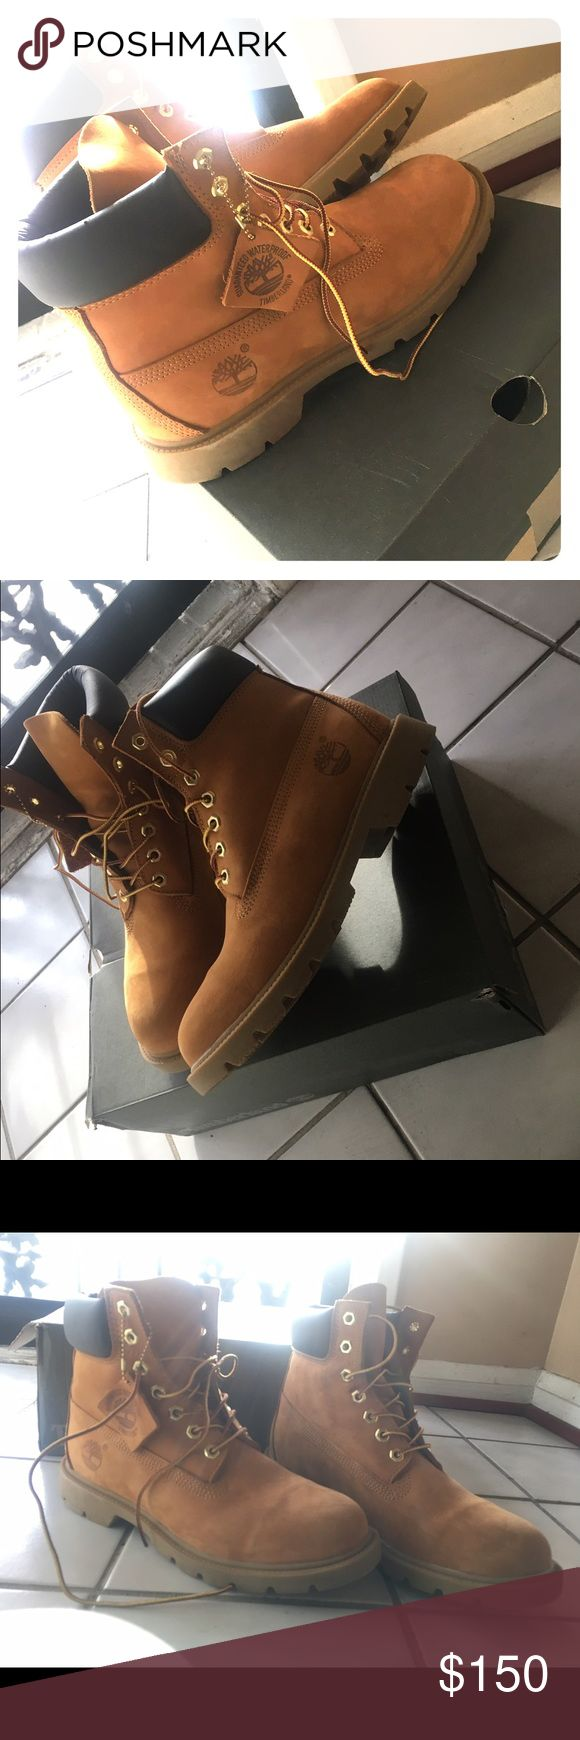 "Timberland boots Timberland Classic 6"" basic... Basically new timbs for sale... worn twice... men's 7.5=women's 9 Timberland Shoes Ankle Boots & Booties"